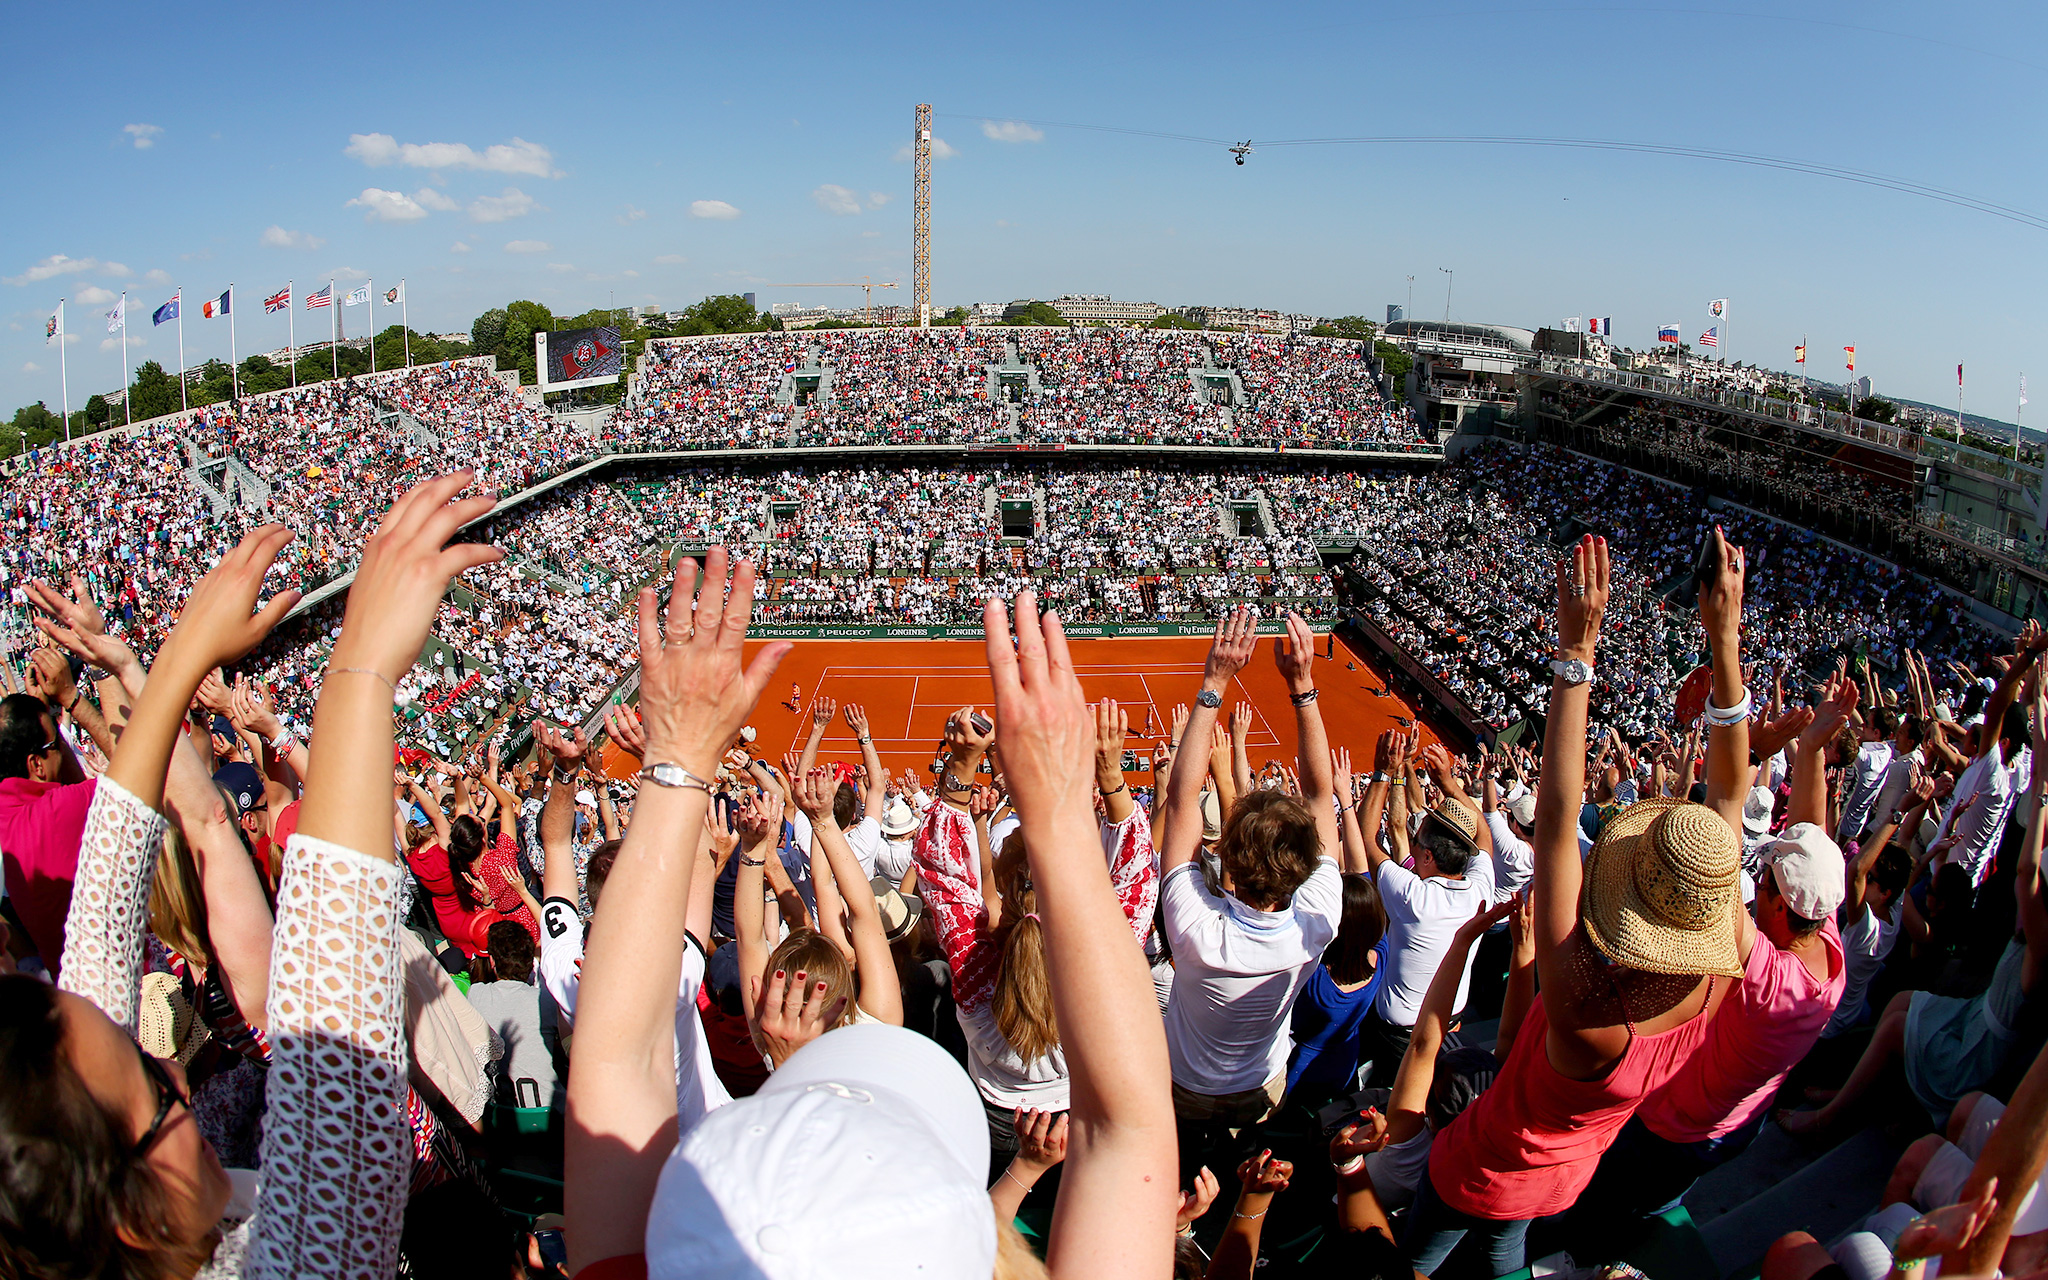 Fans at Court Philippe Chatrier do the wave during the women's singles final between Simona Halep and eventual champion Maria Sharapova.